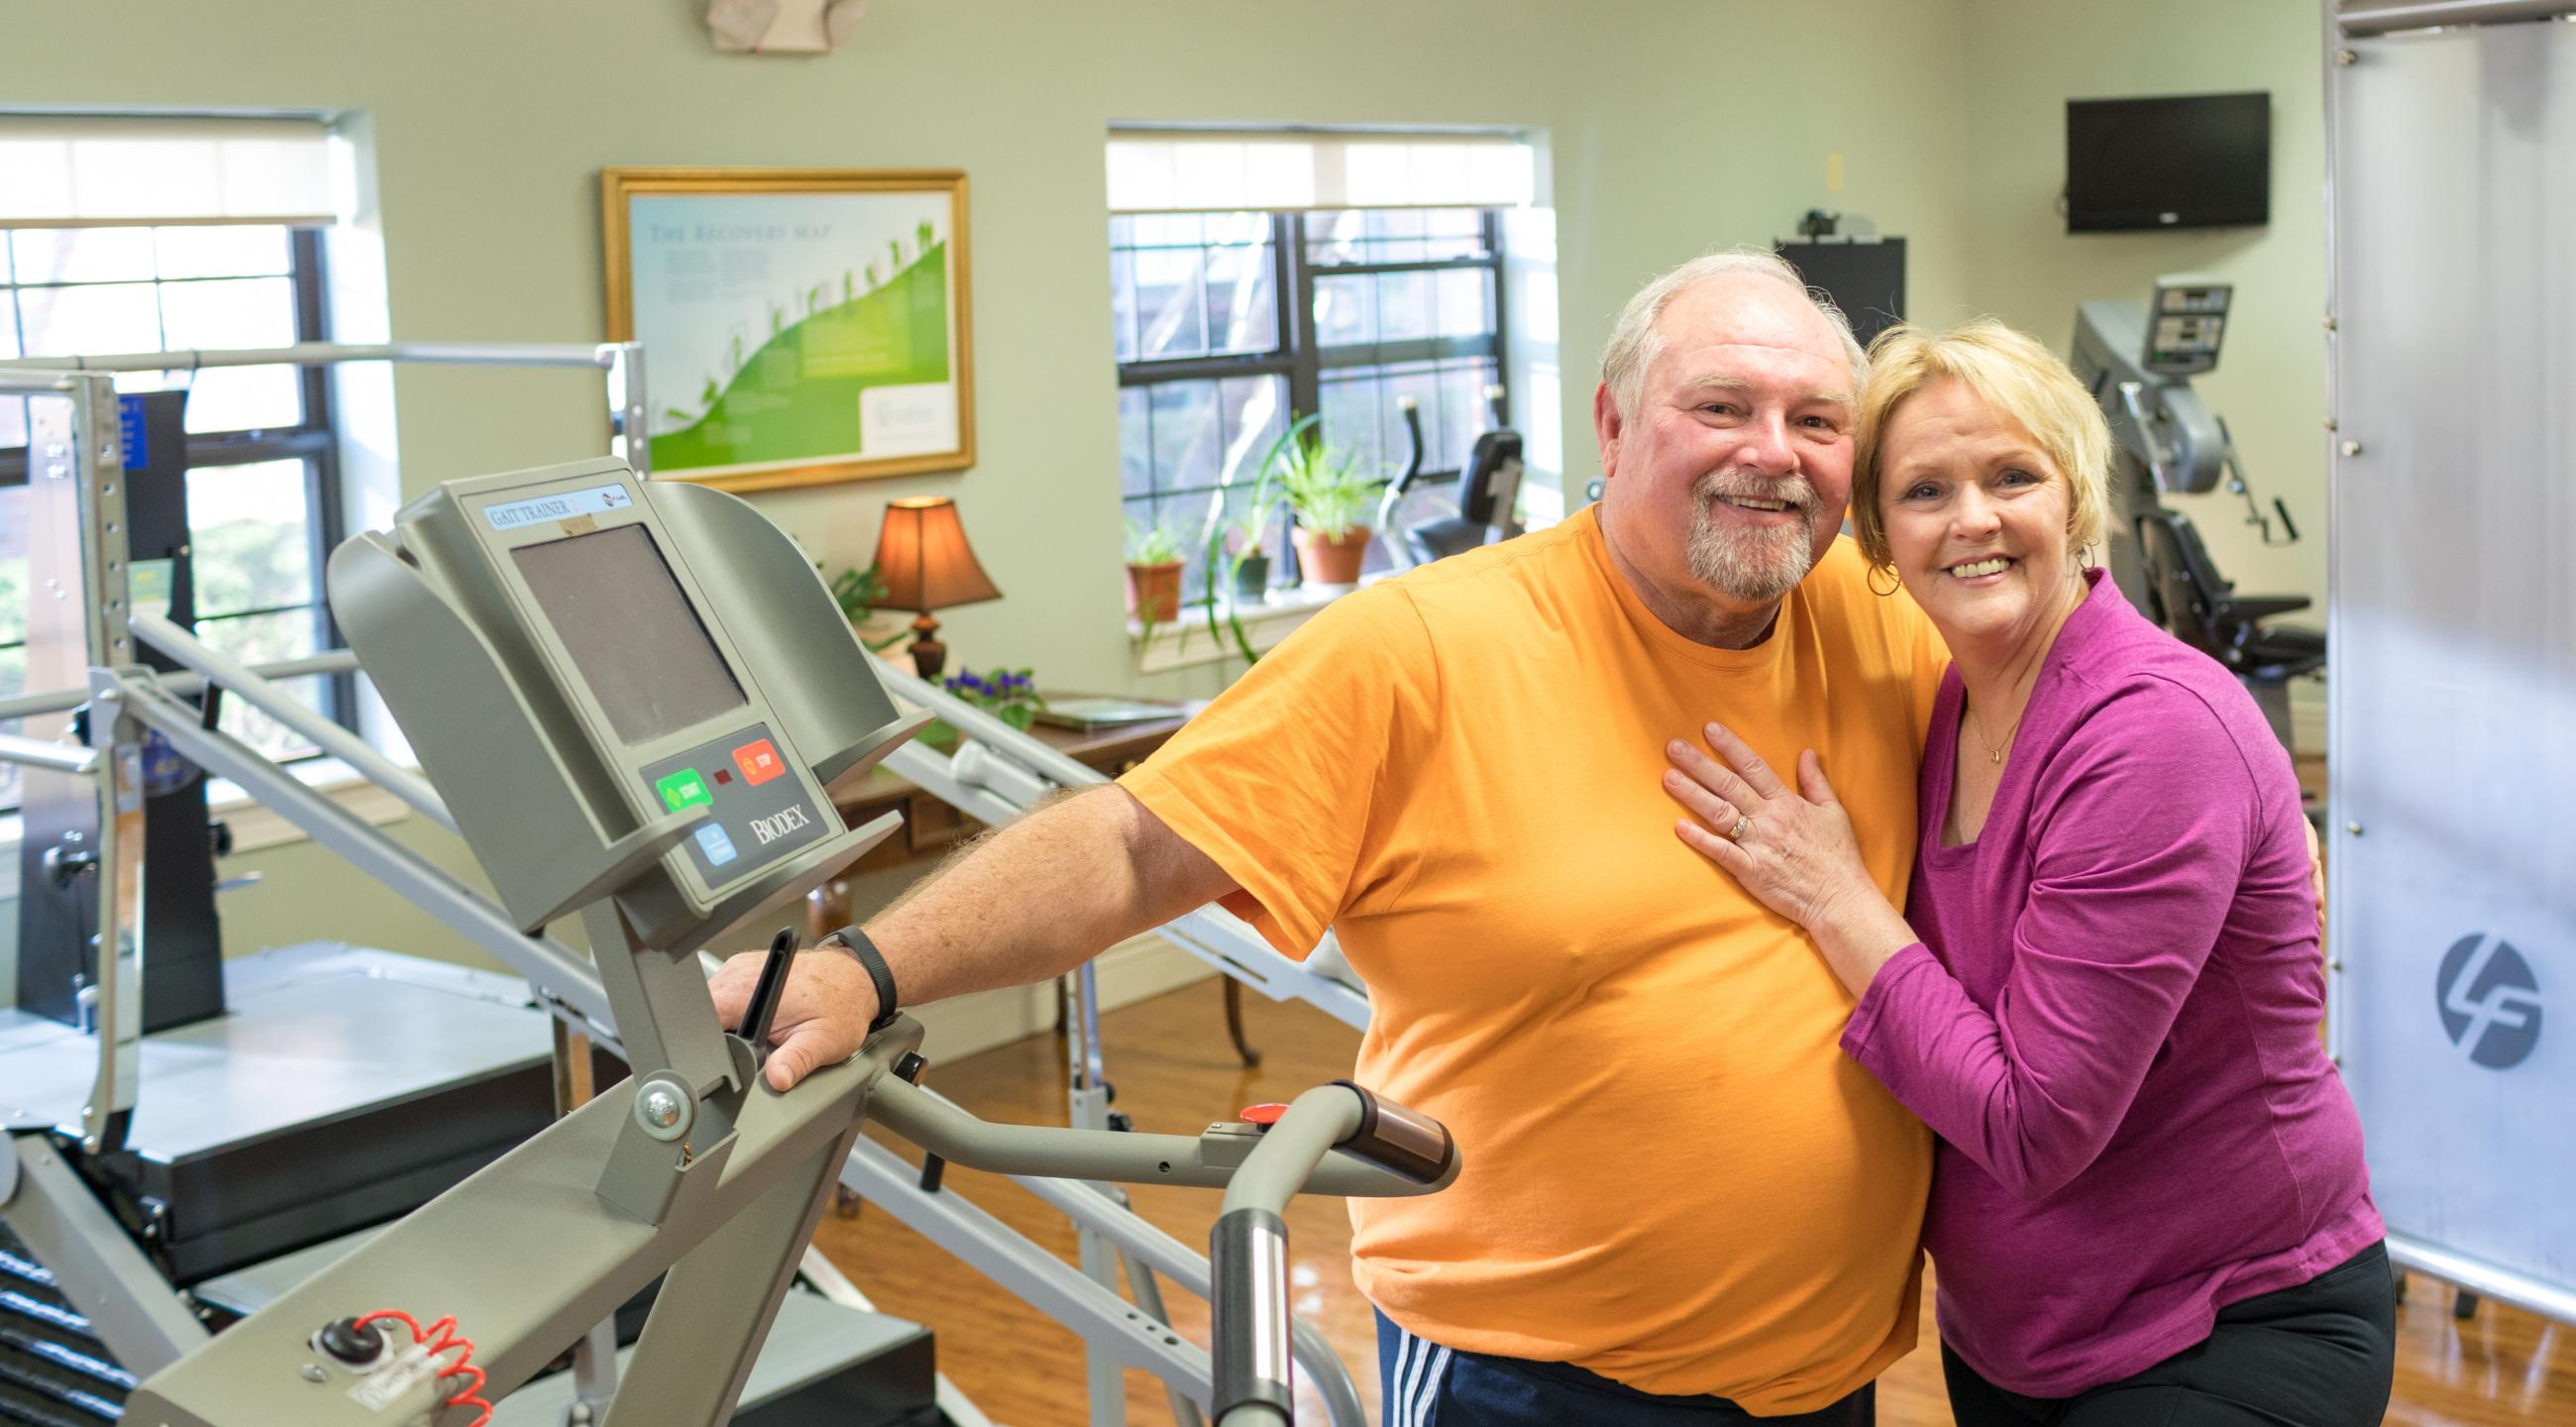 Steve and Debbie Miller in the LifeWorks Rehab gym